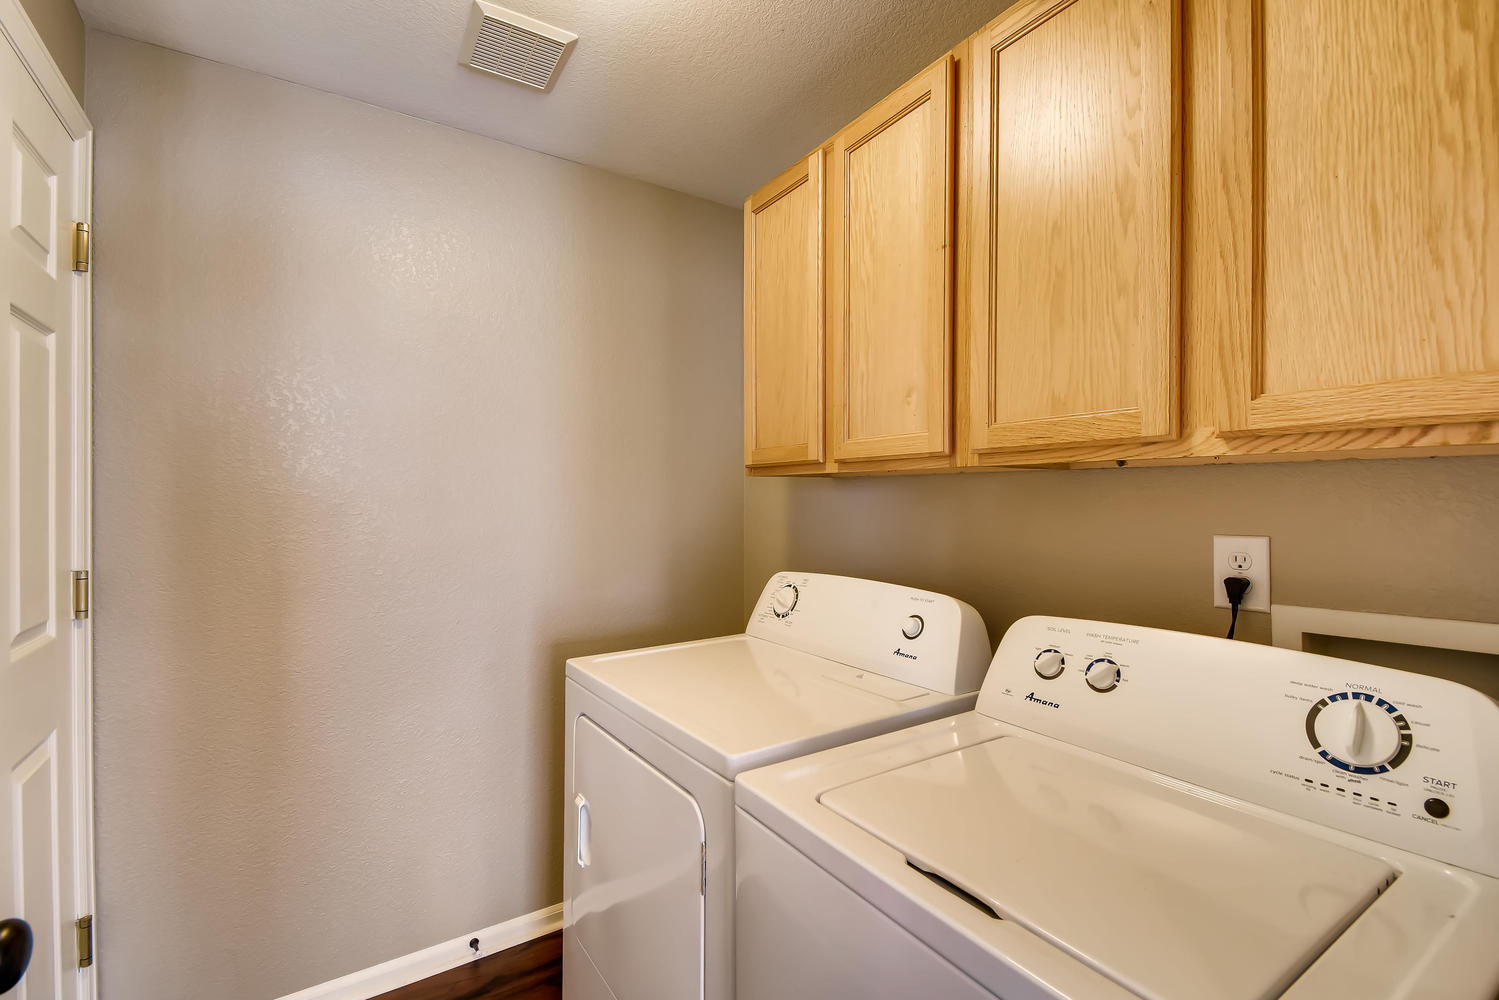 REAL ESTATE LISTING: 10595 Forester Pl Longmont CO Laundry Room